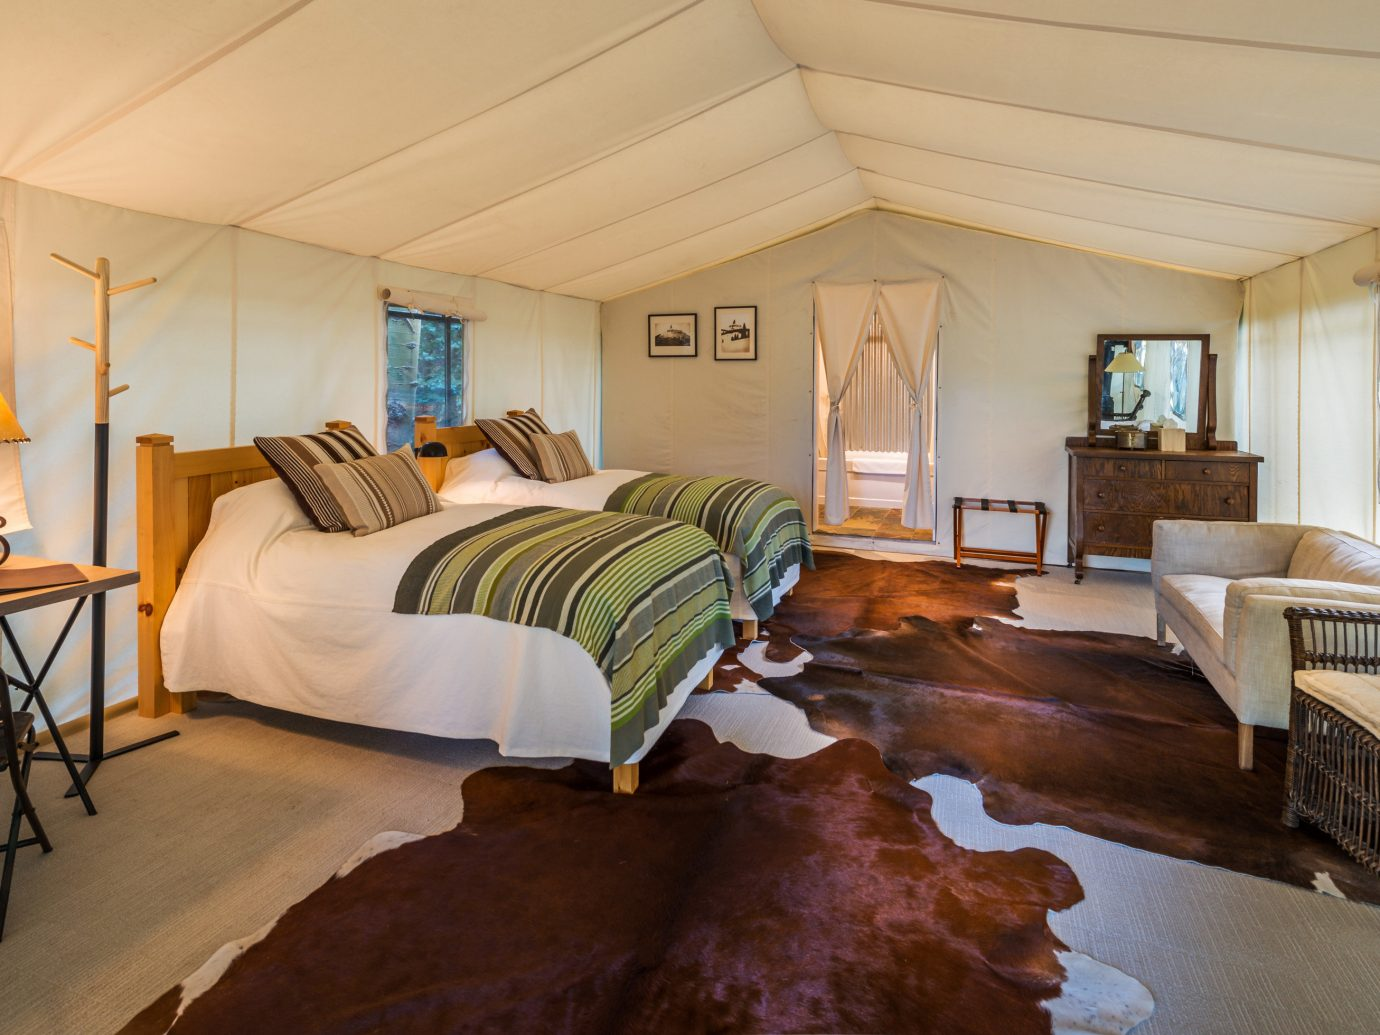 Glamping Outdoors + Adventure Trip Ideas Weekend Getaways indoor wall room floor ceiling Living property estate Bedroom home real estate cottage hardwood Villa living room Suite interior design mansion farmhouse furniture area several